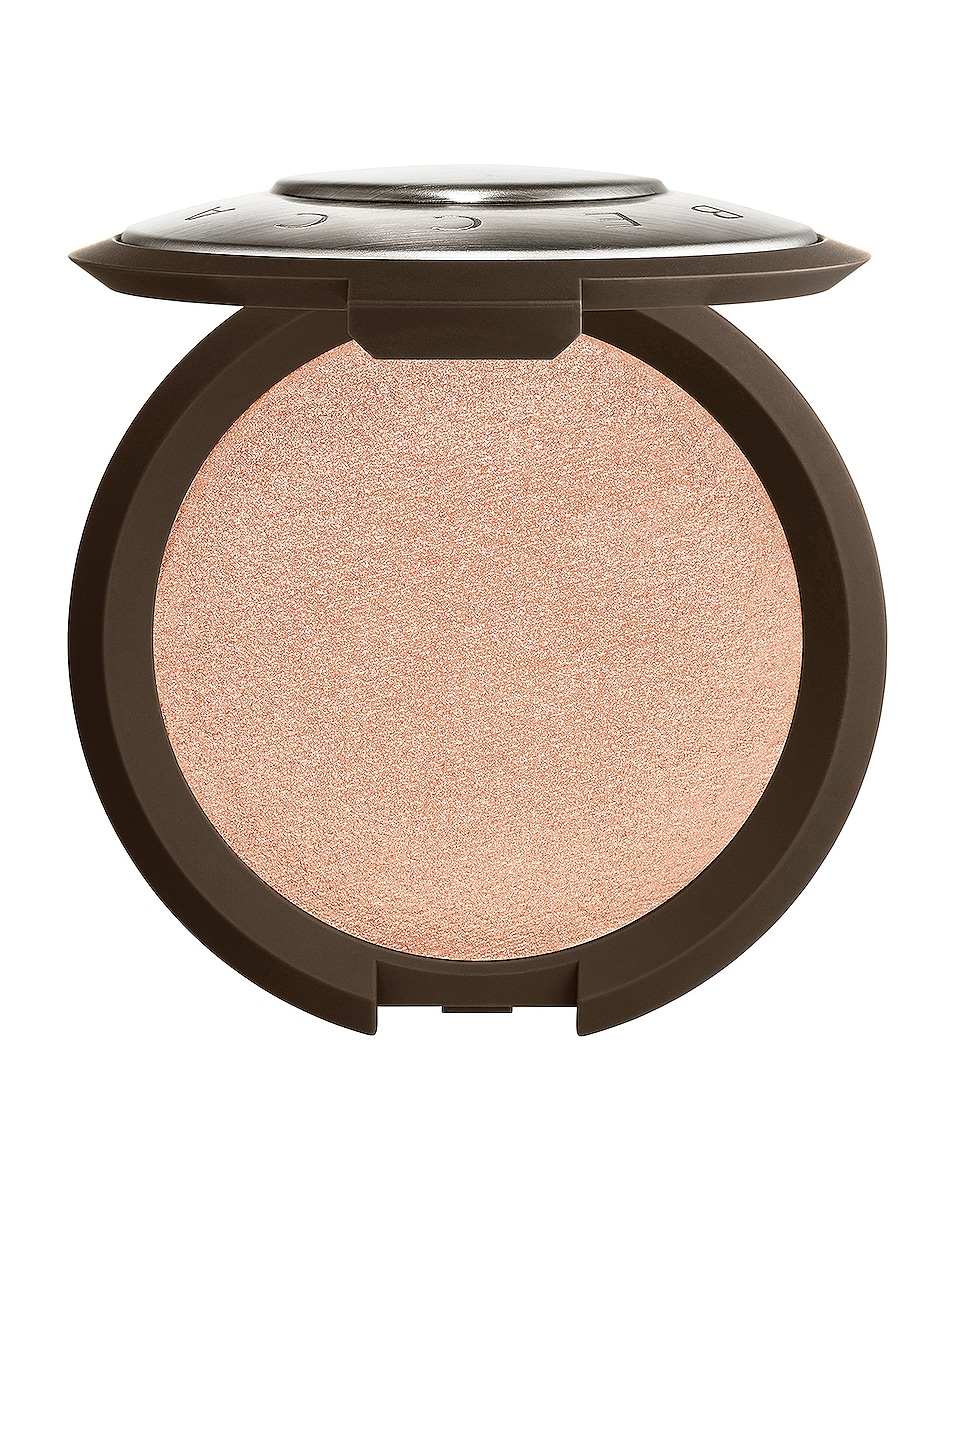 BECCA Shimmering Skin Perfector Pressed Highlighter in Rose Quartz